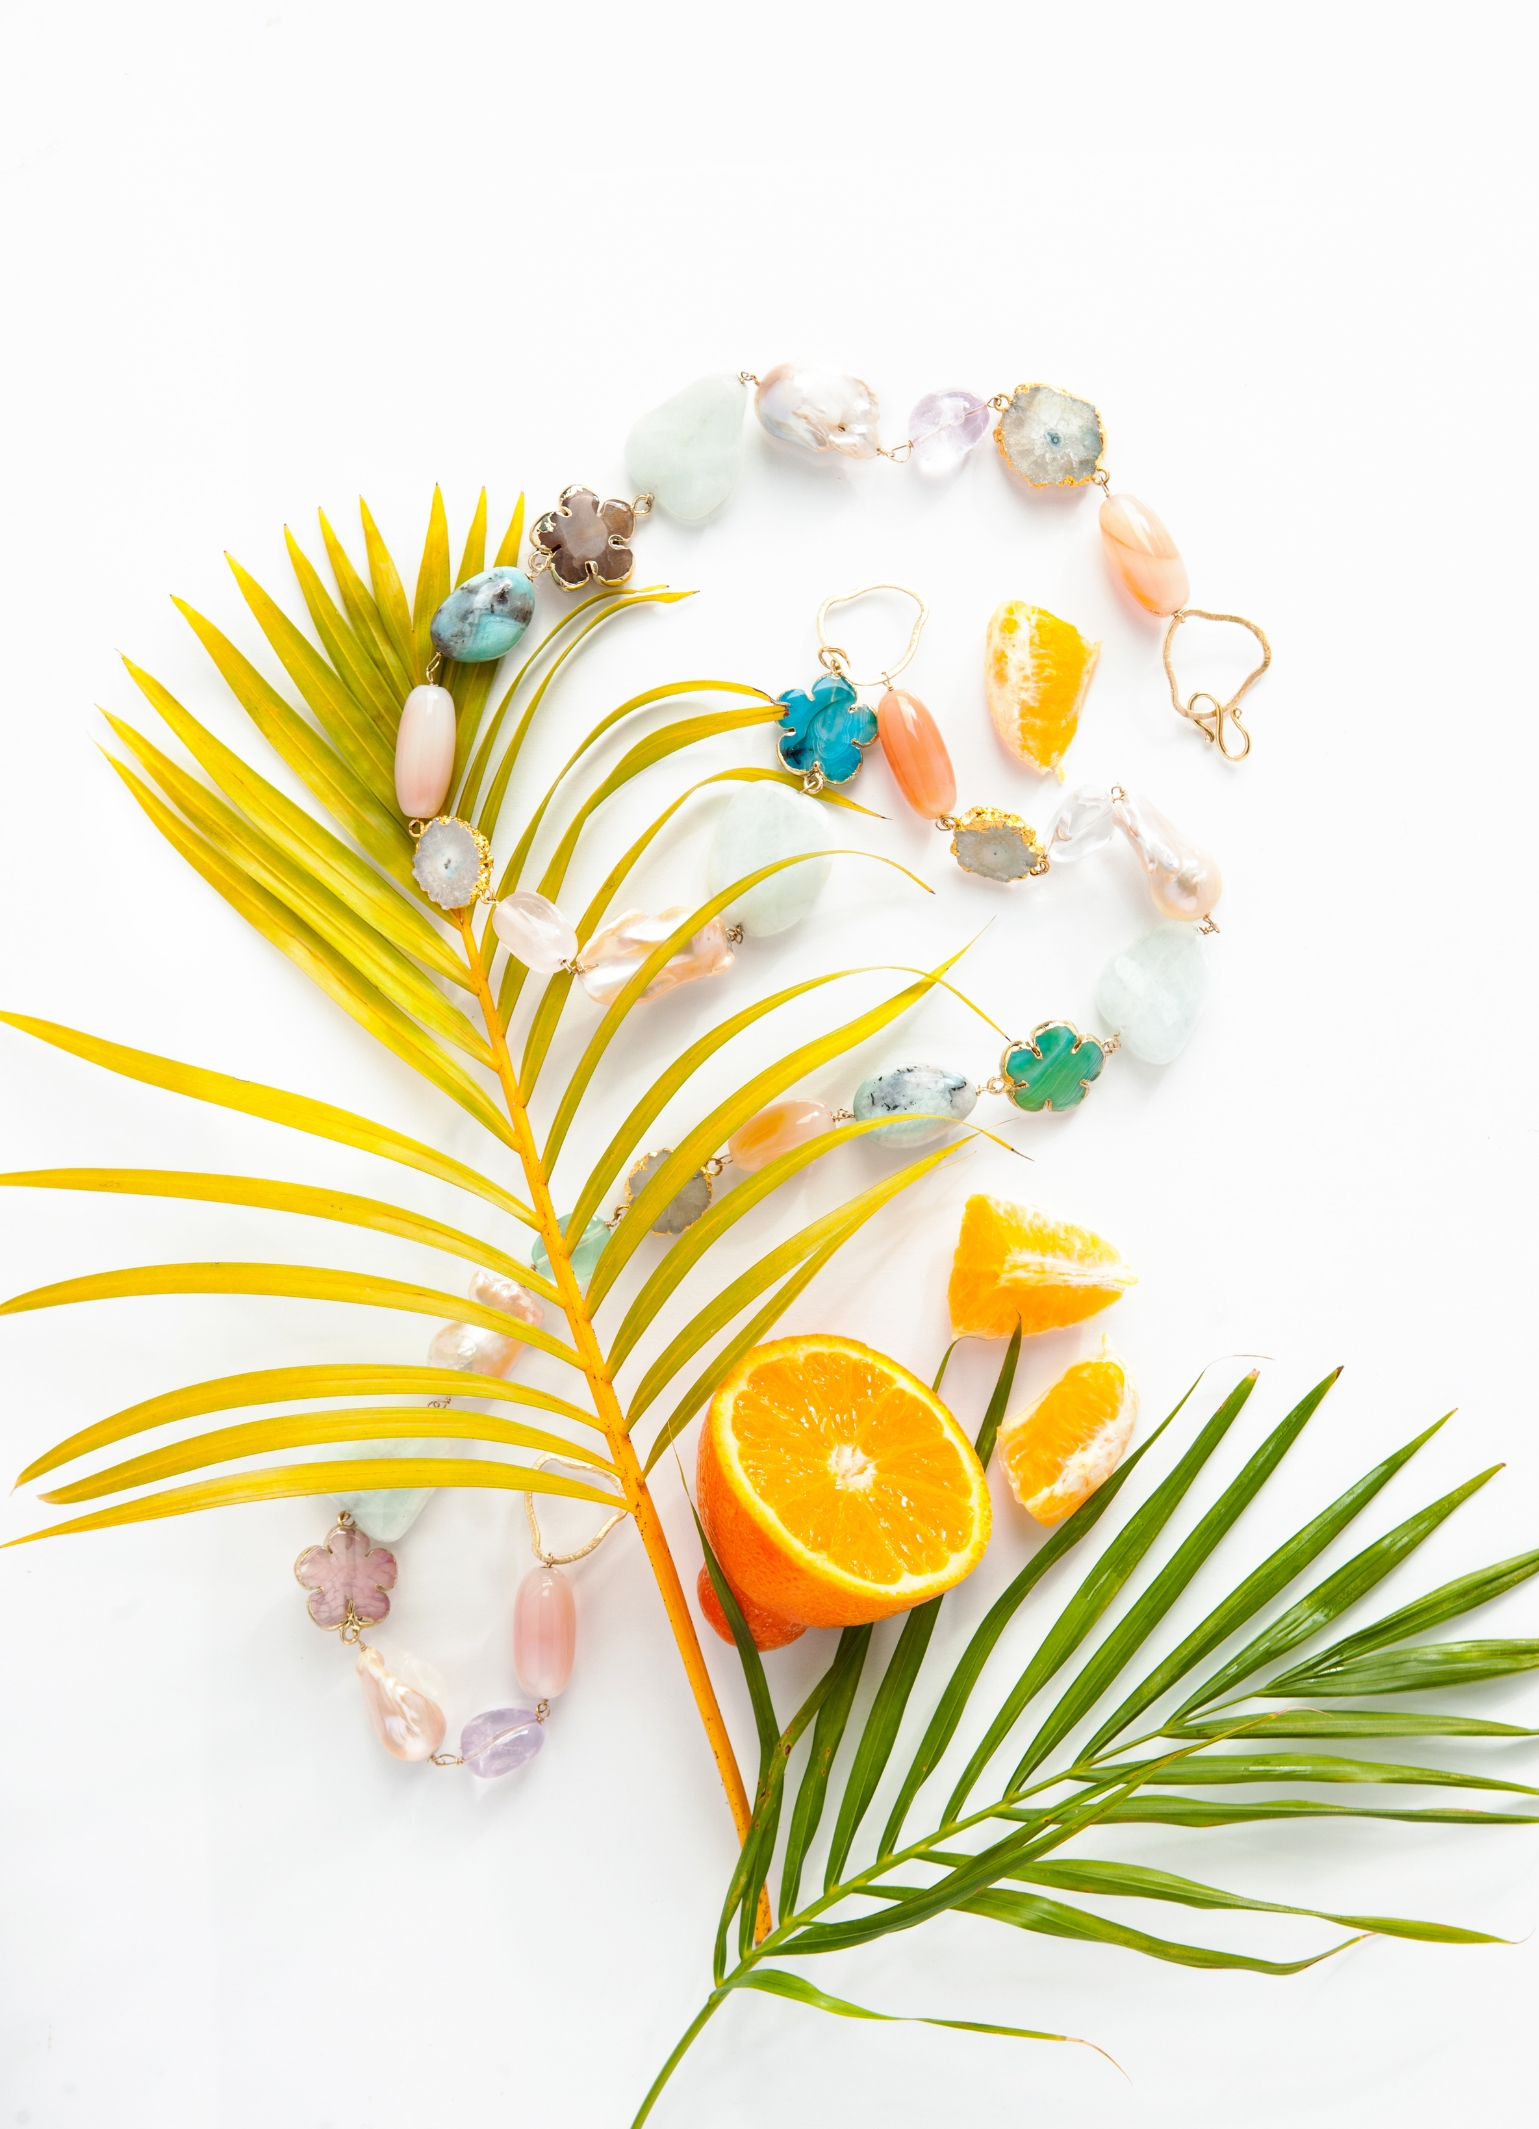 fruits_plants_jewelry_naples_illustrated_vanessa_rogers_photography